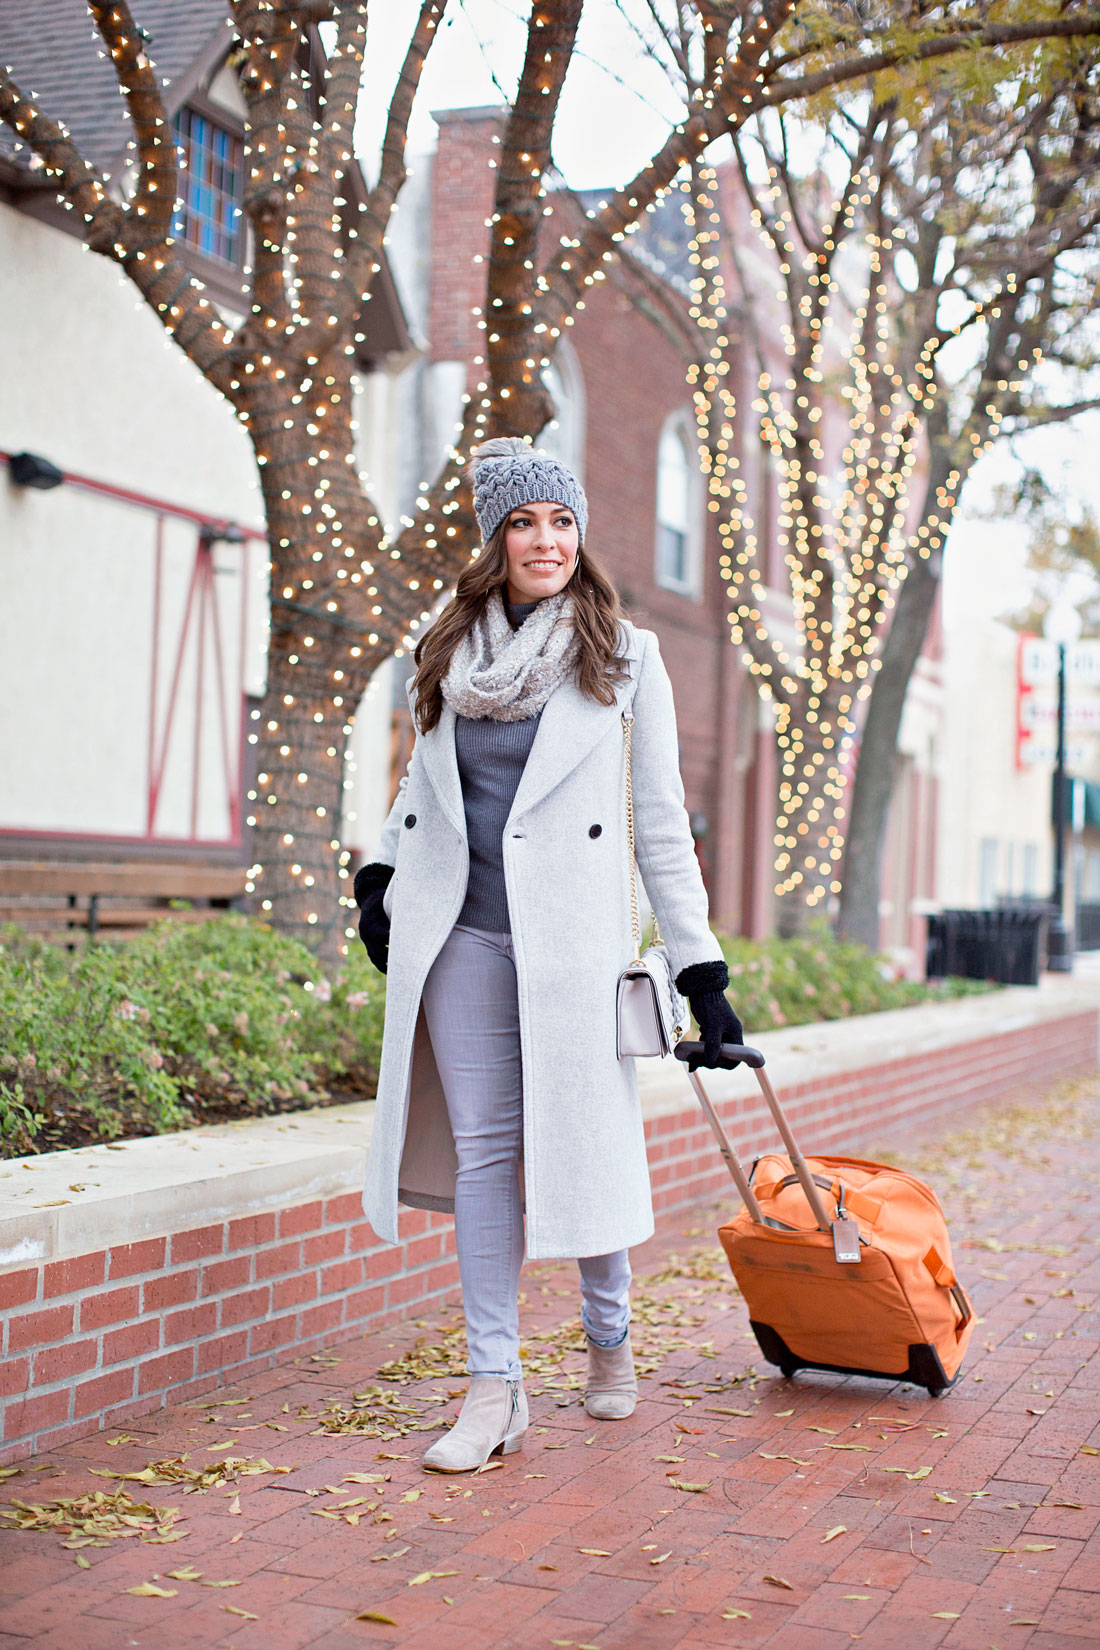 A Glam Lifestyle blogger shares easy travel outfits like a grey monochrome look including Club Monaco Daylina coat and grey Citizens of Humanity jeans